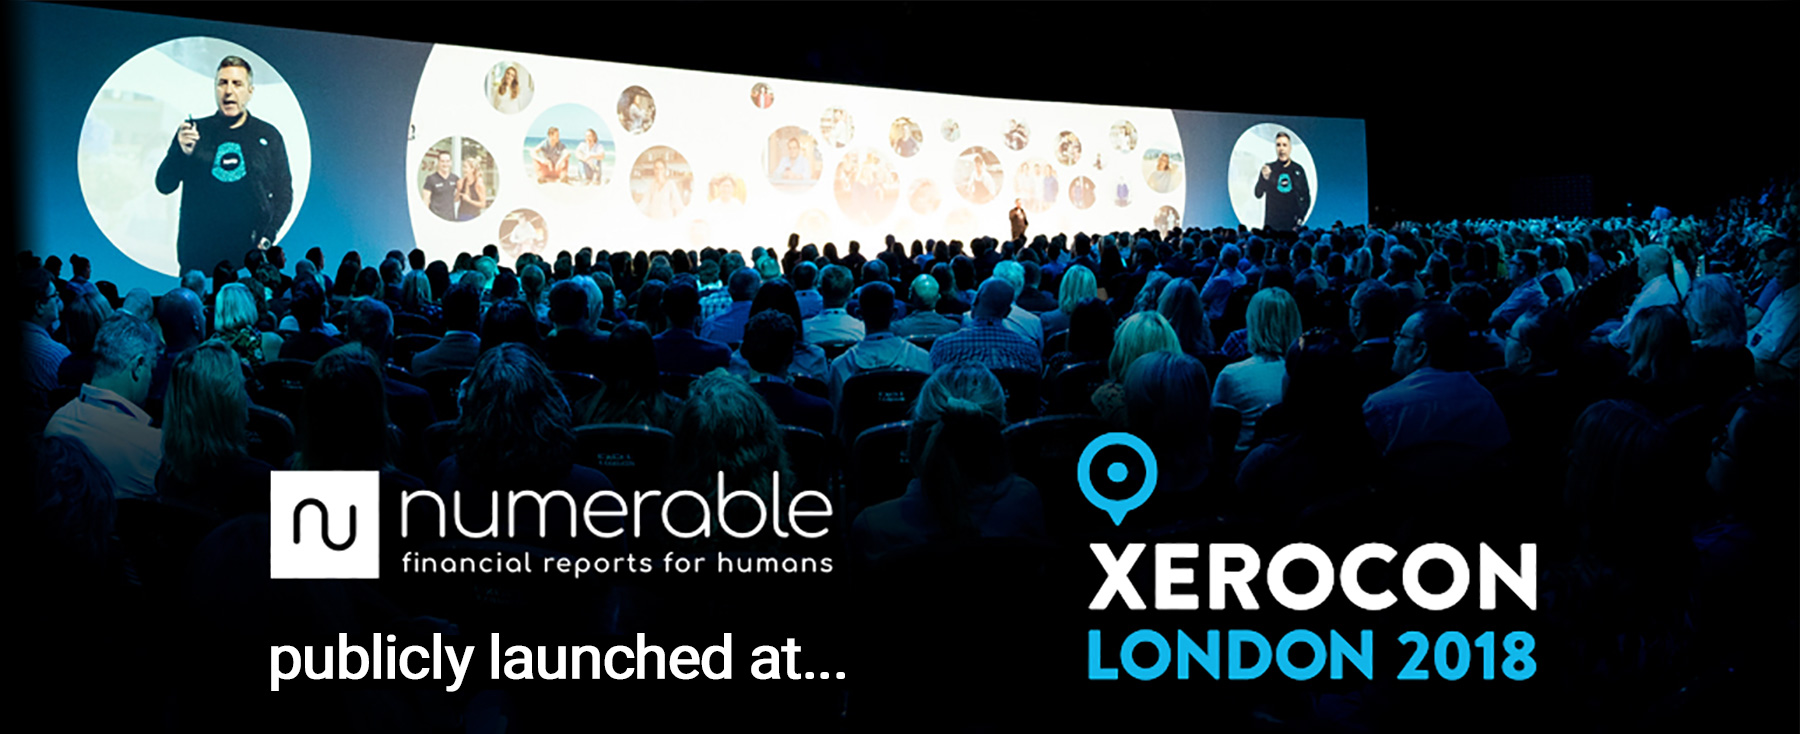 Numerable launched at Xerocon London 2018